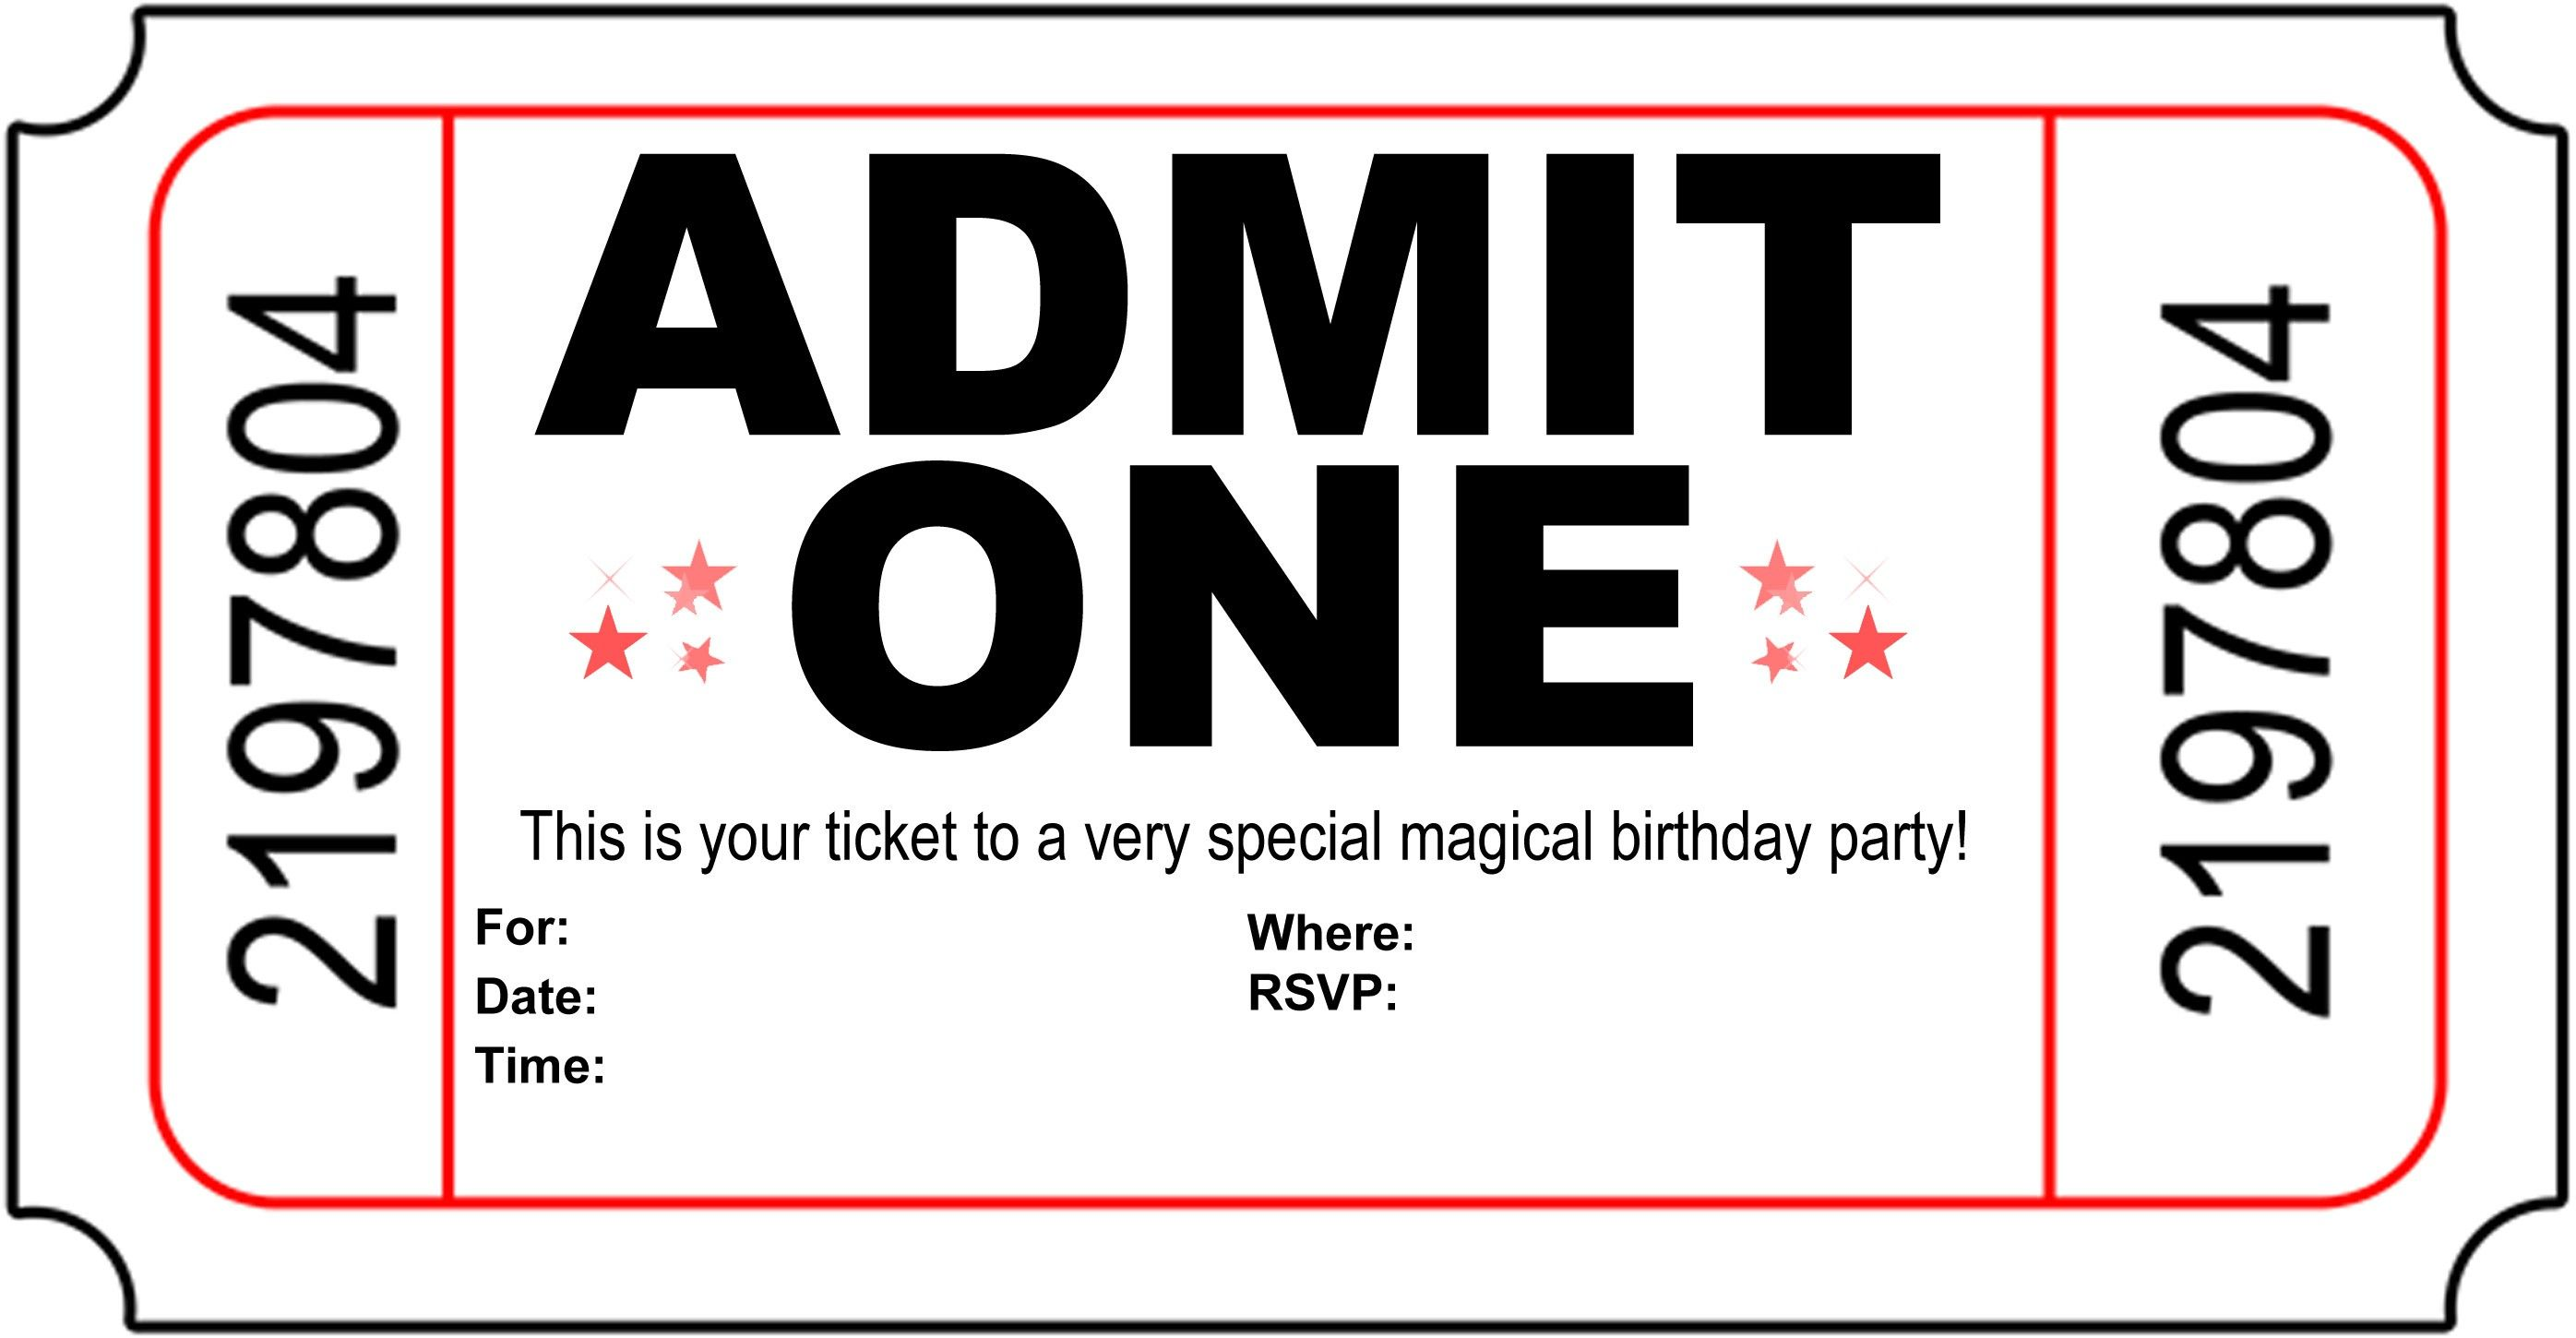 Birthday Party Invitation Free Printable | free to print | Pinterest ...